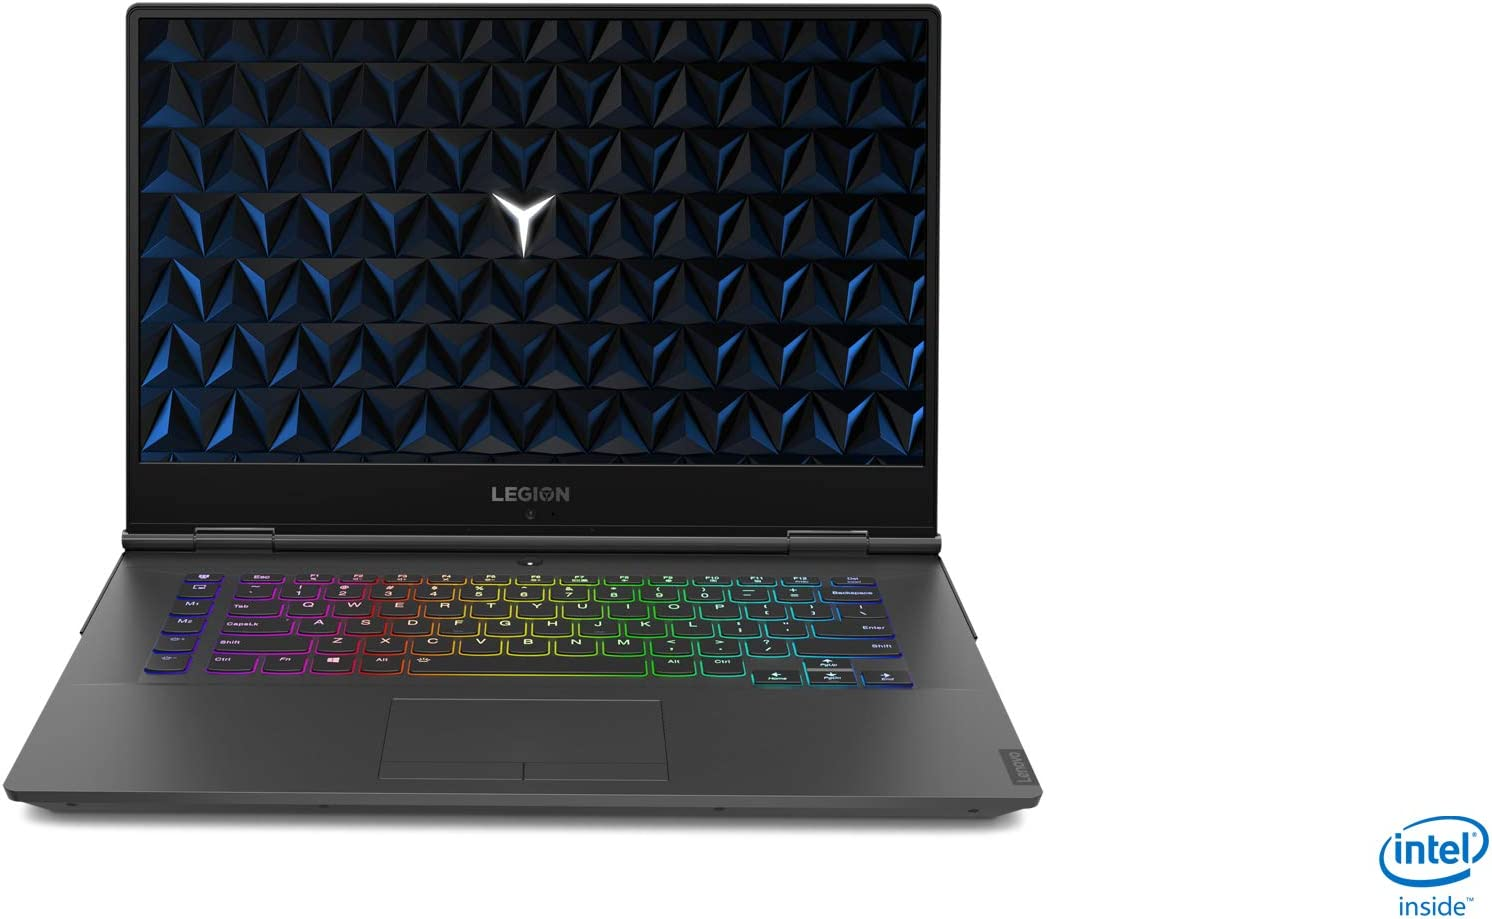 "Lenovo Legion Y740-15IRH Gaming Laptop, 15.6"" Screen, Intel Core i7, 16GB Memory, 1TB Hard Drive/256GB Solid State Drive, Windows 10, 81UF0001US"